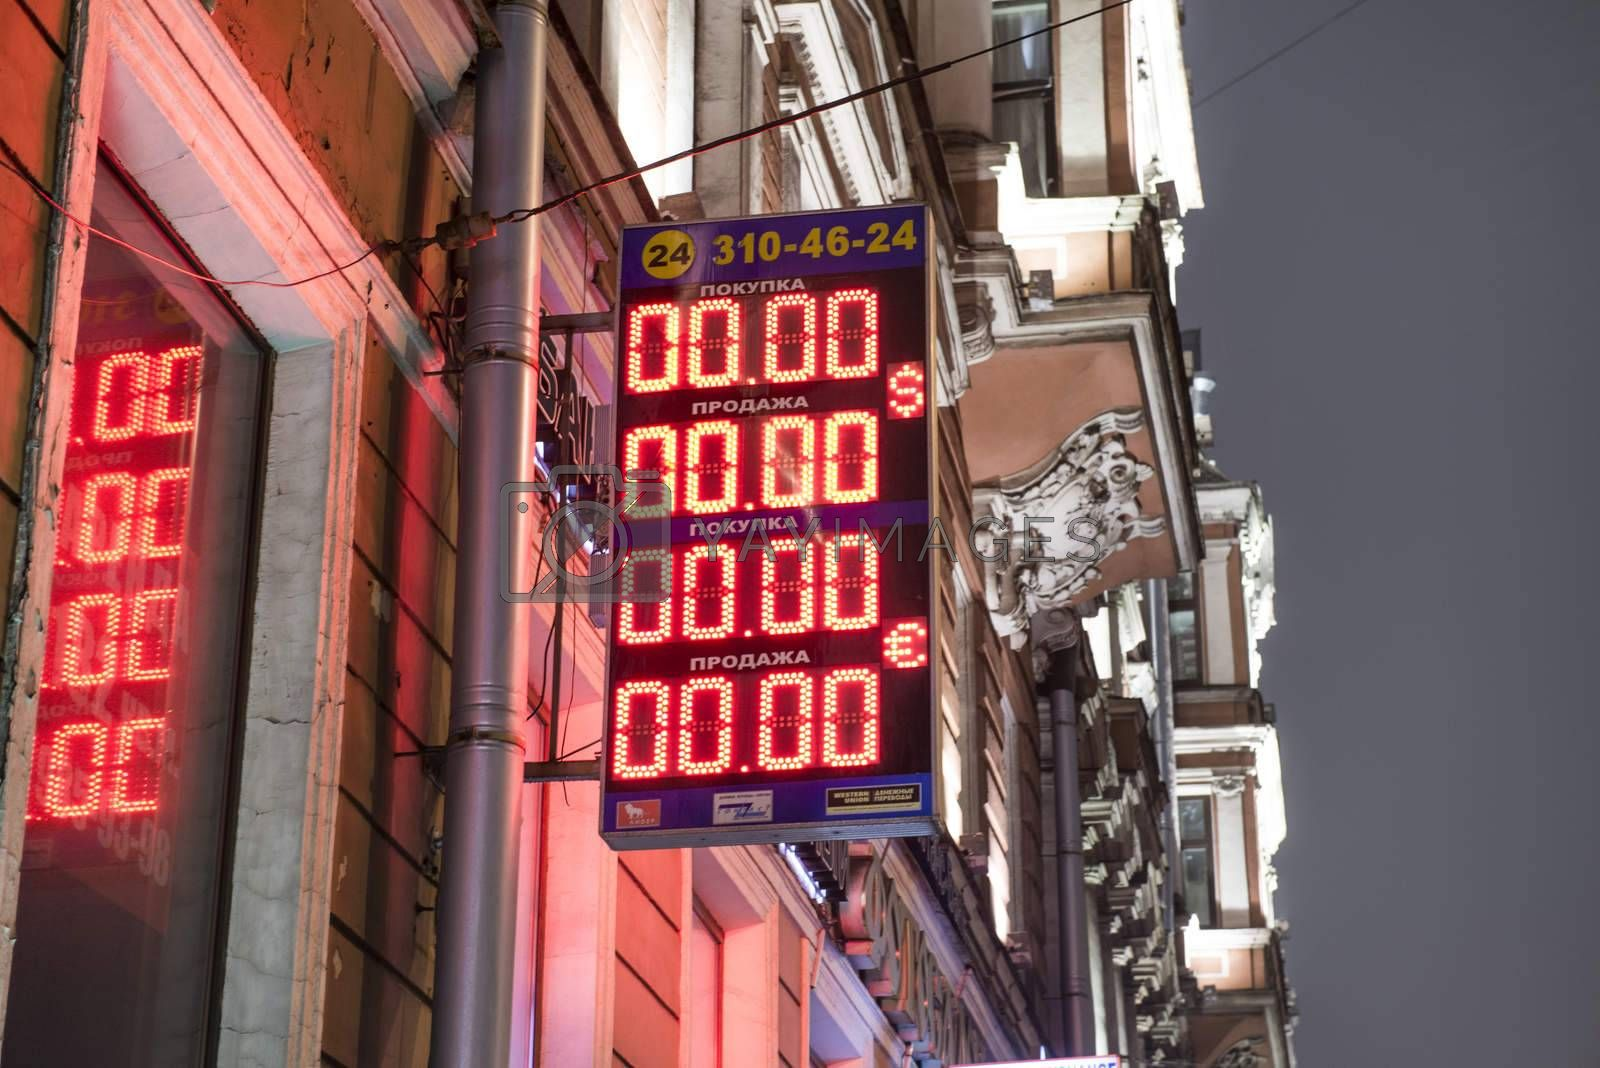 Sign with details about foreign currency exchange rates.